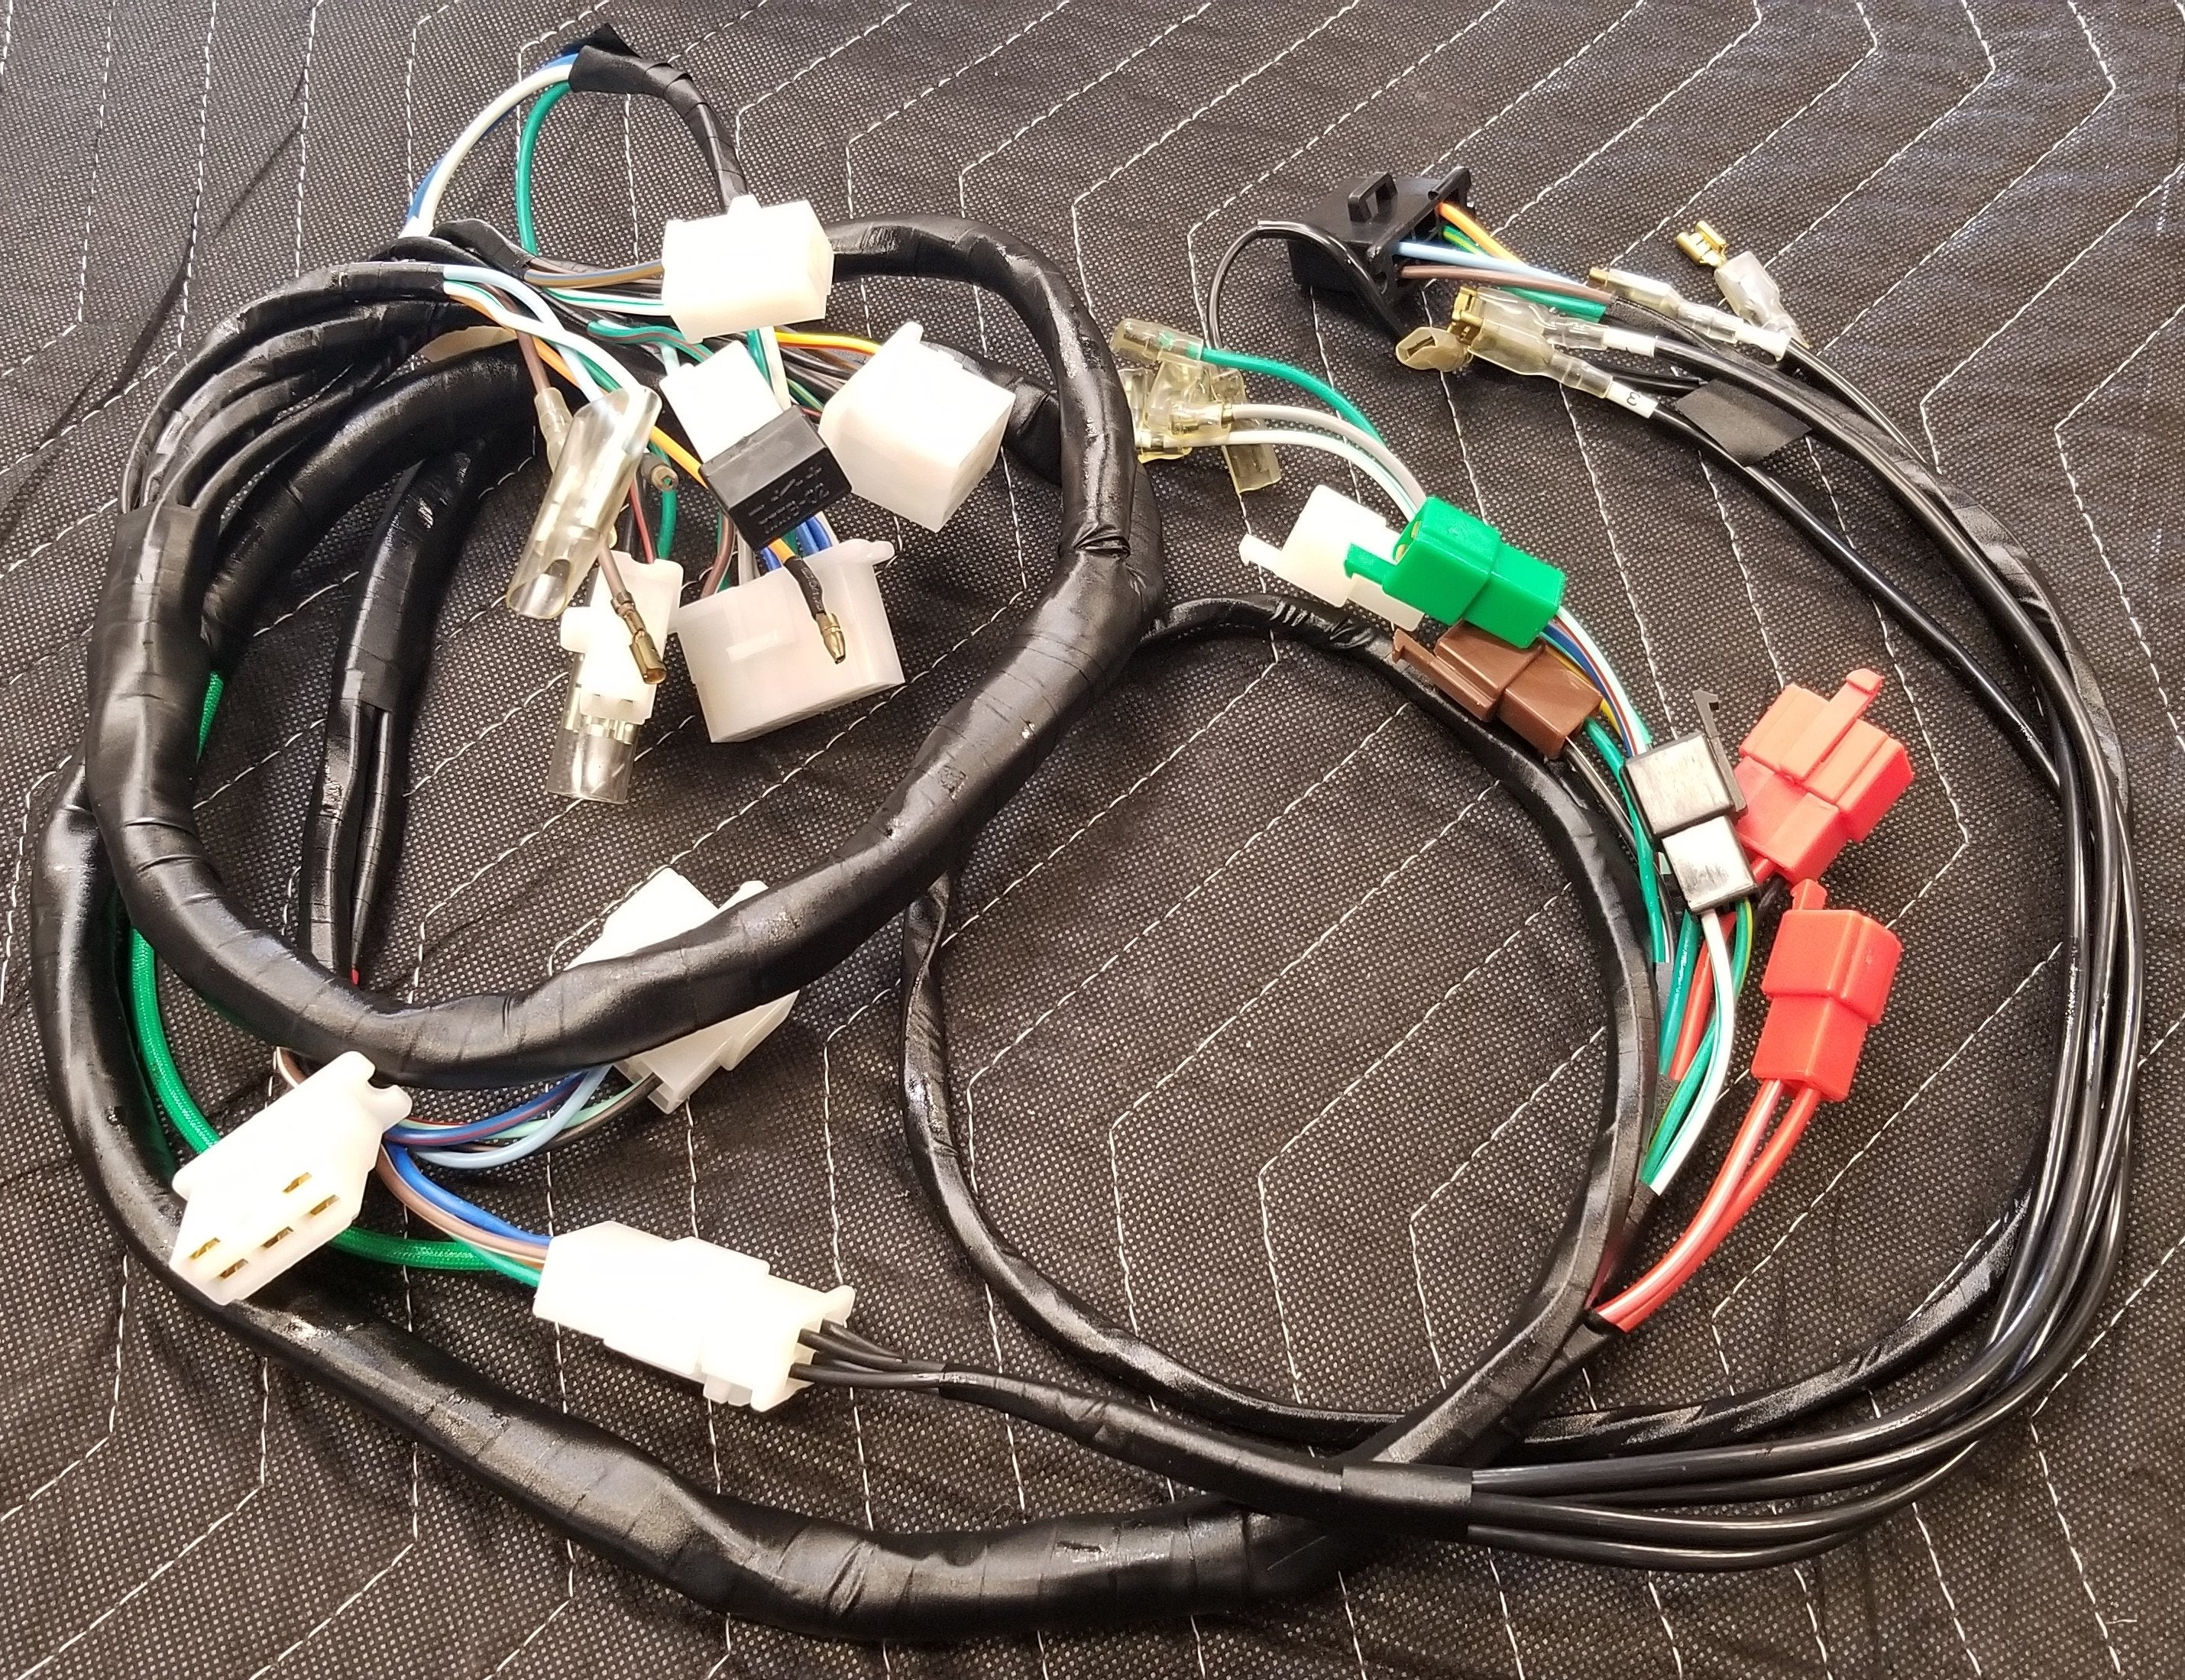 Outstanding Honda Cbx Main Wiring Harness Twin Shock Ikon Shocks Usa Wiring 101 Vieworaxxcnl